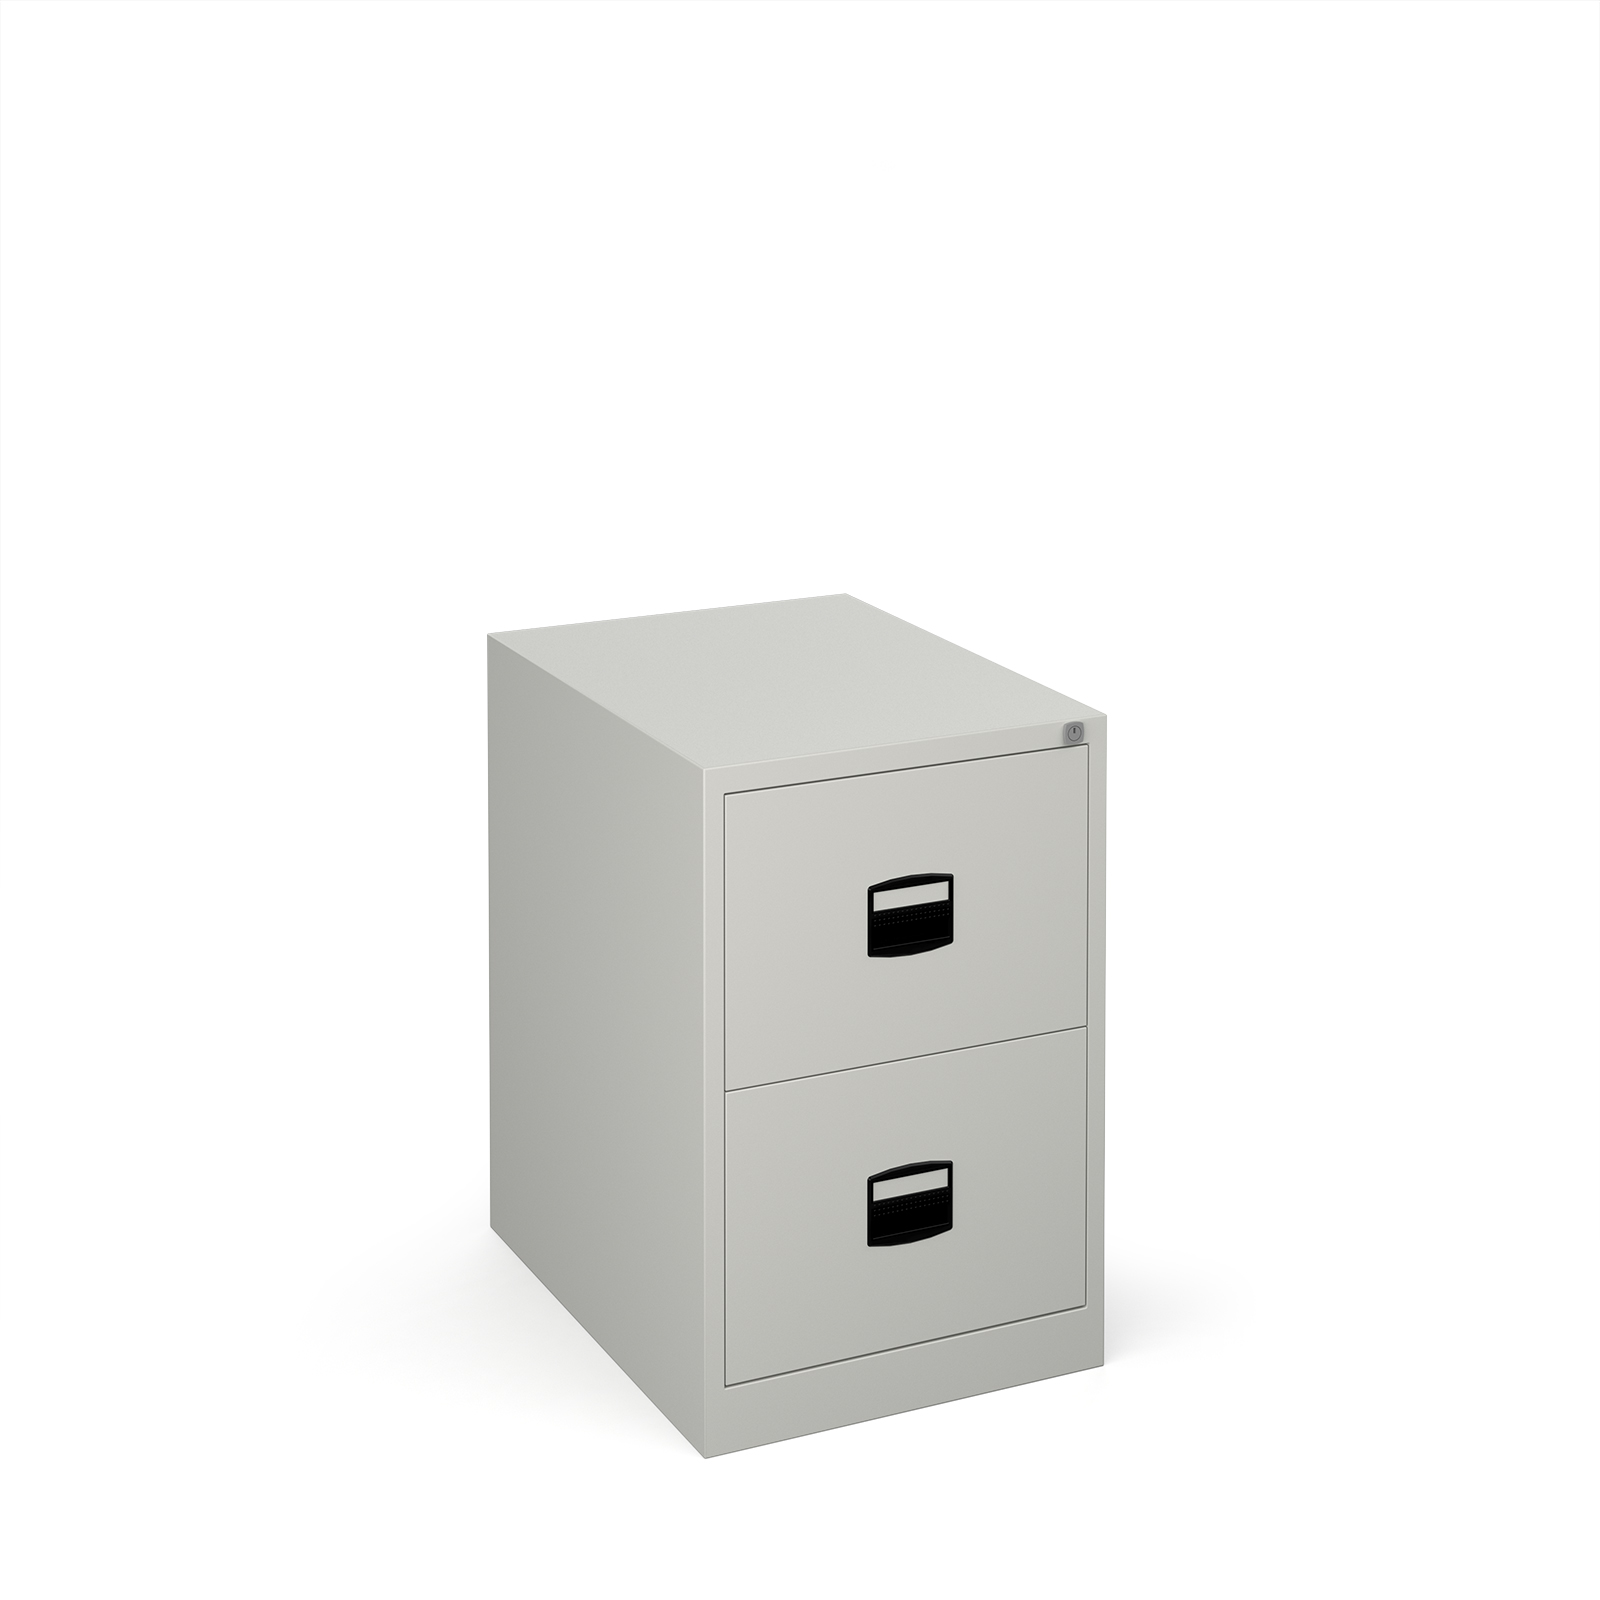 Steel Steel 2 drawer contract filing cabinet 711mm high - goose grey